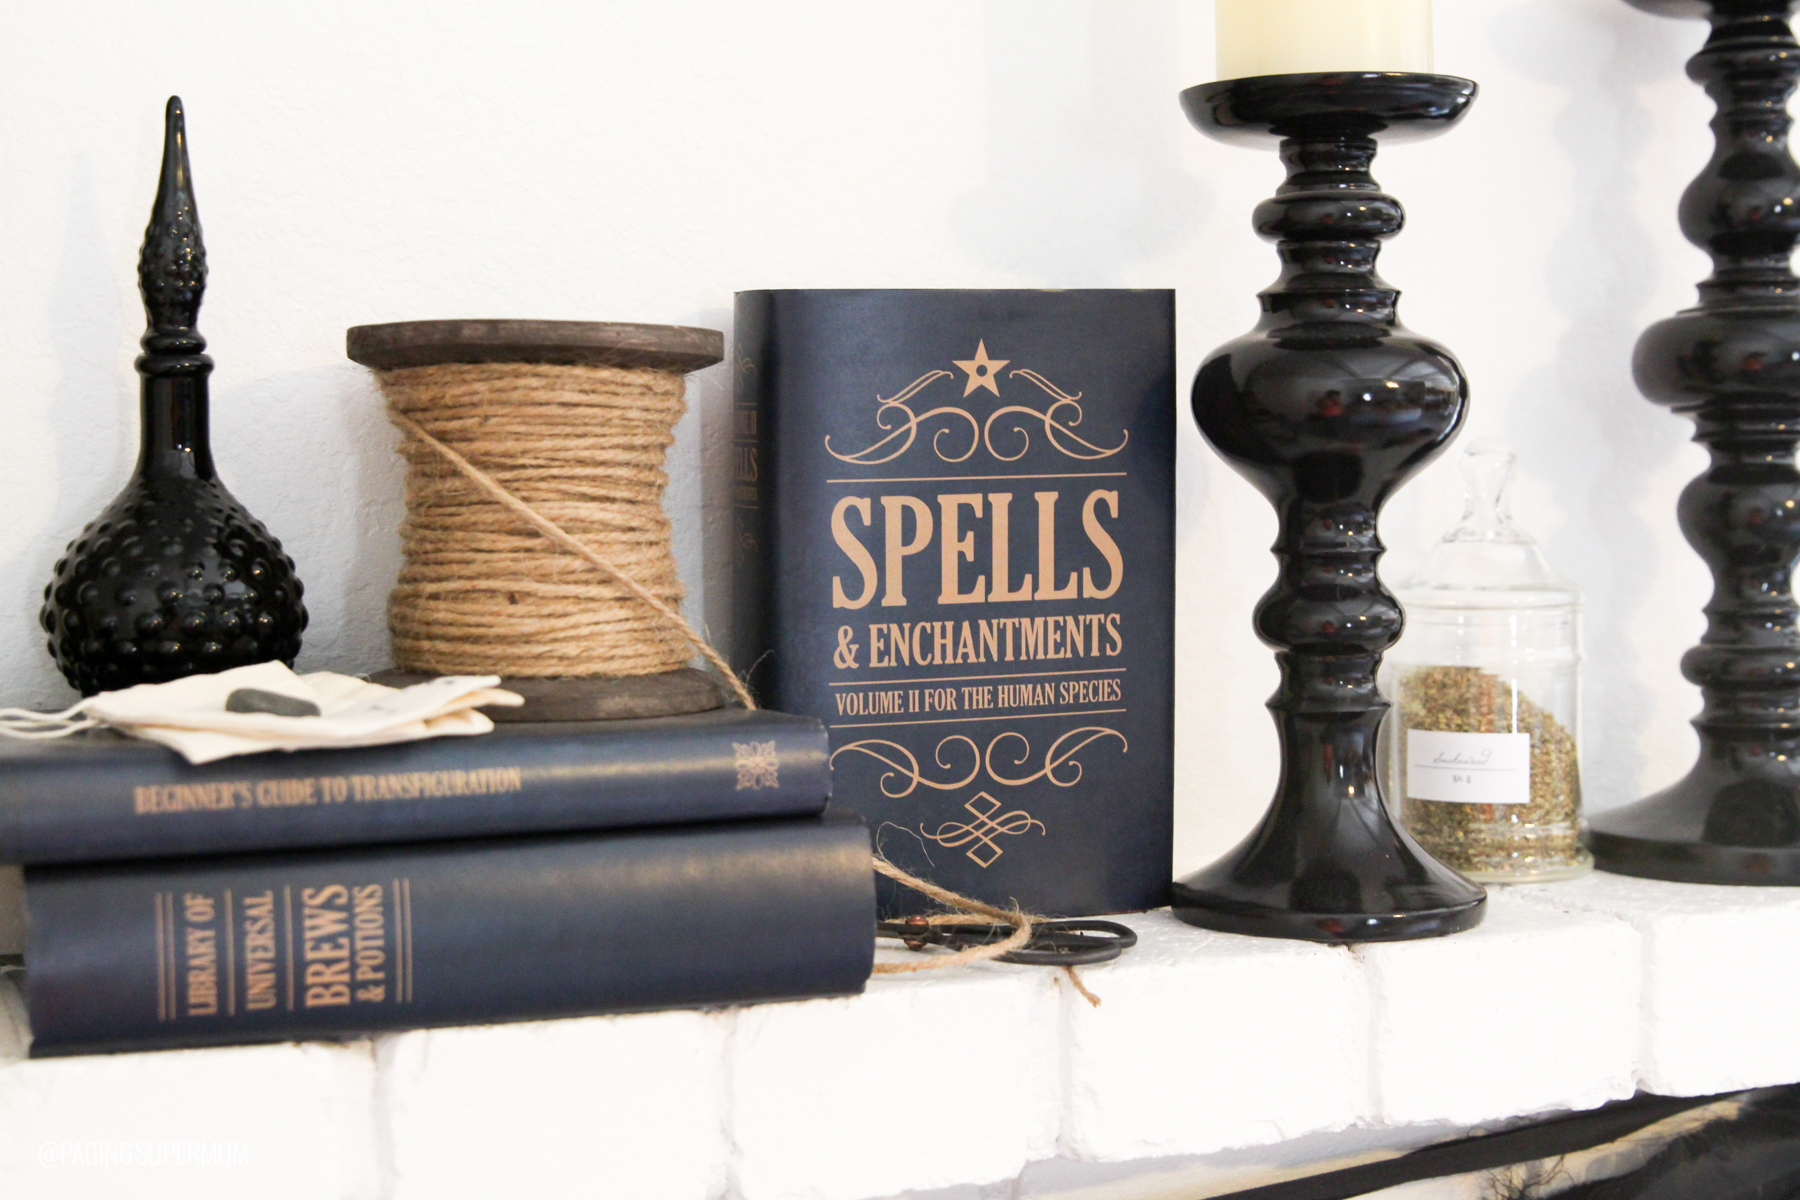 Witch Party Ideas: Free printable Spell Book covers are perfect for this Witchy Mantle Decor via @PagingSupermom